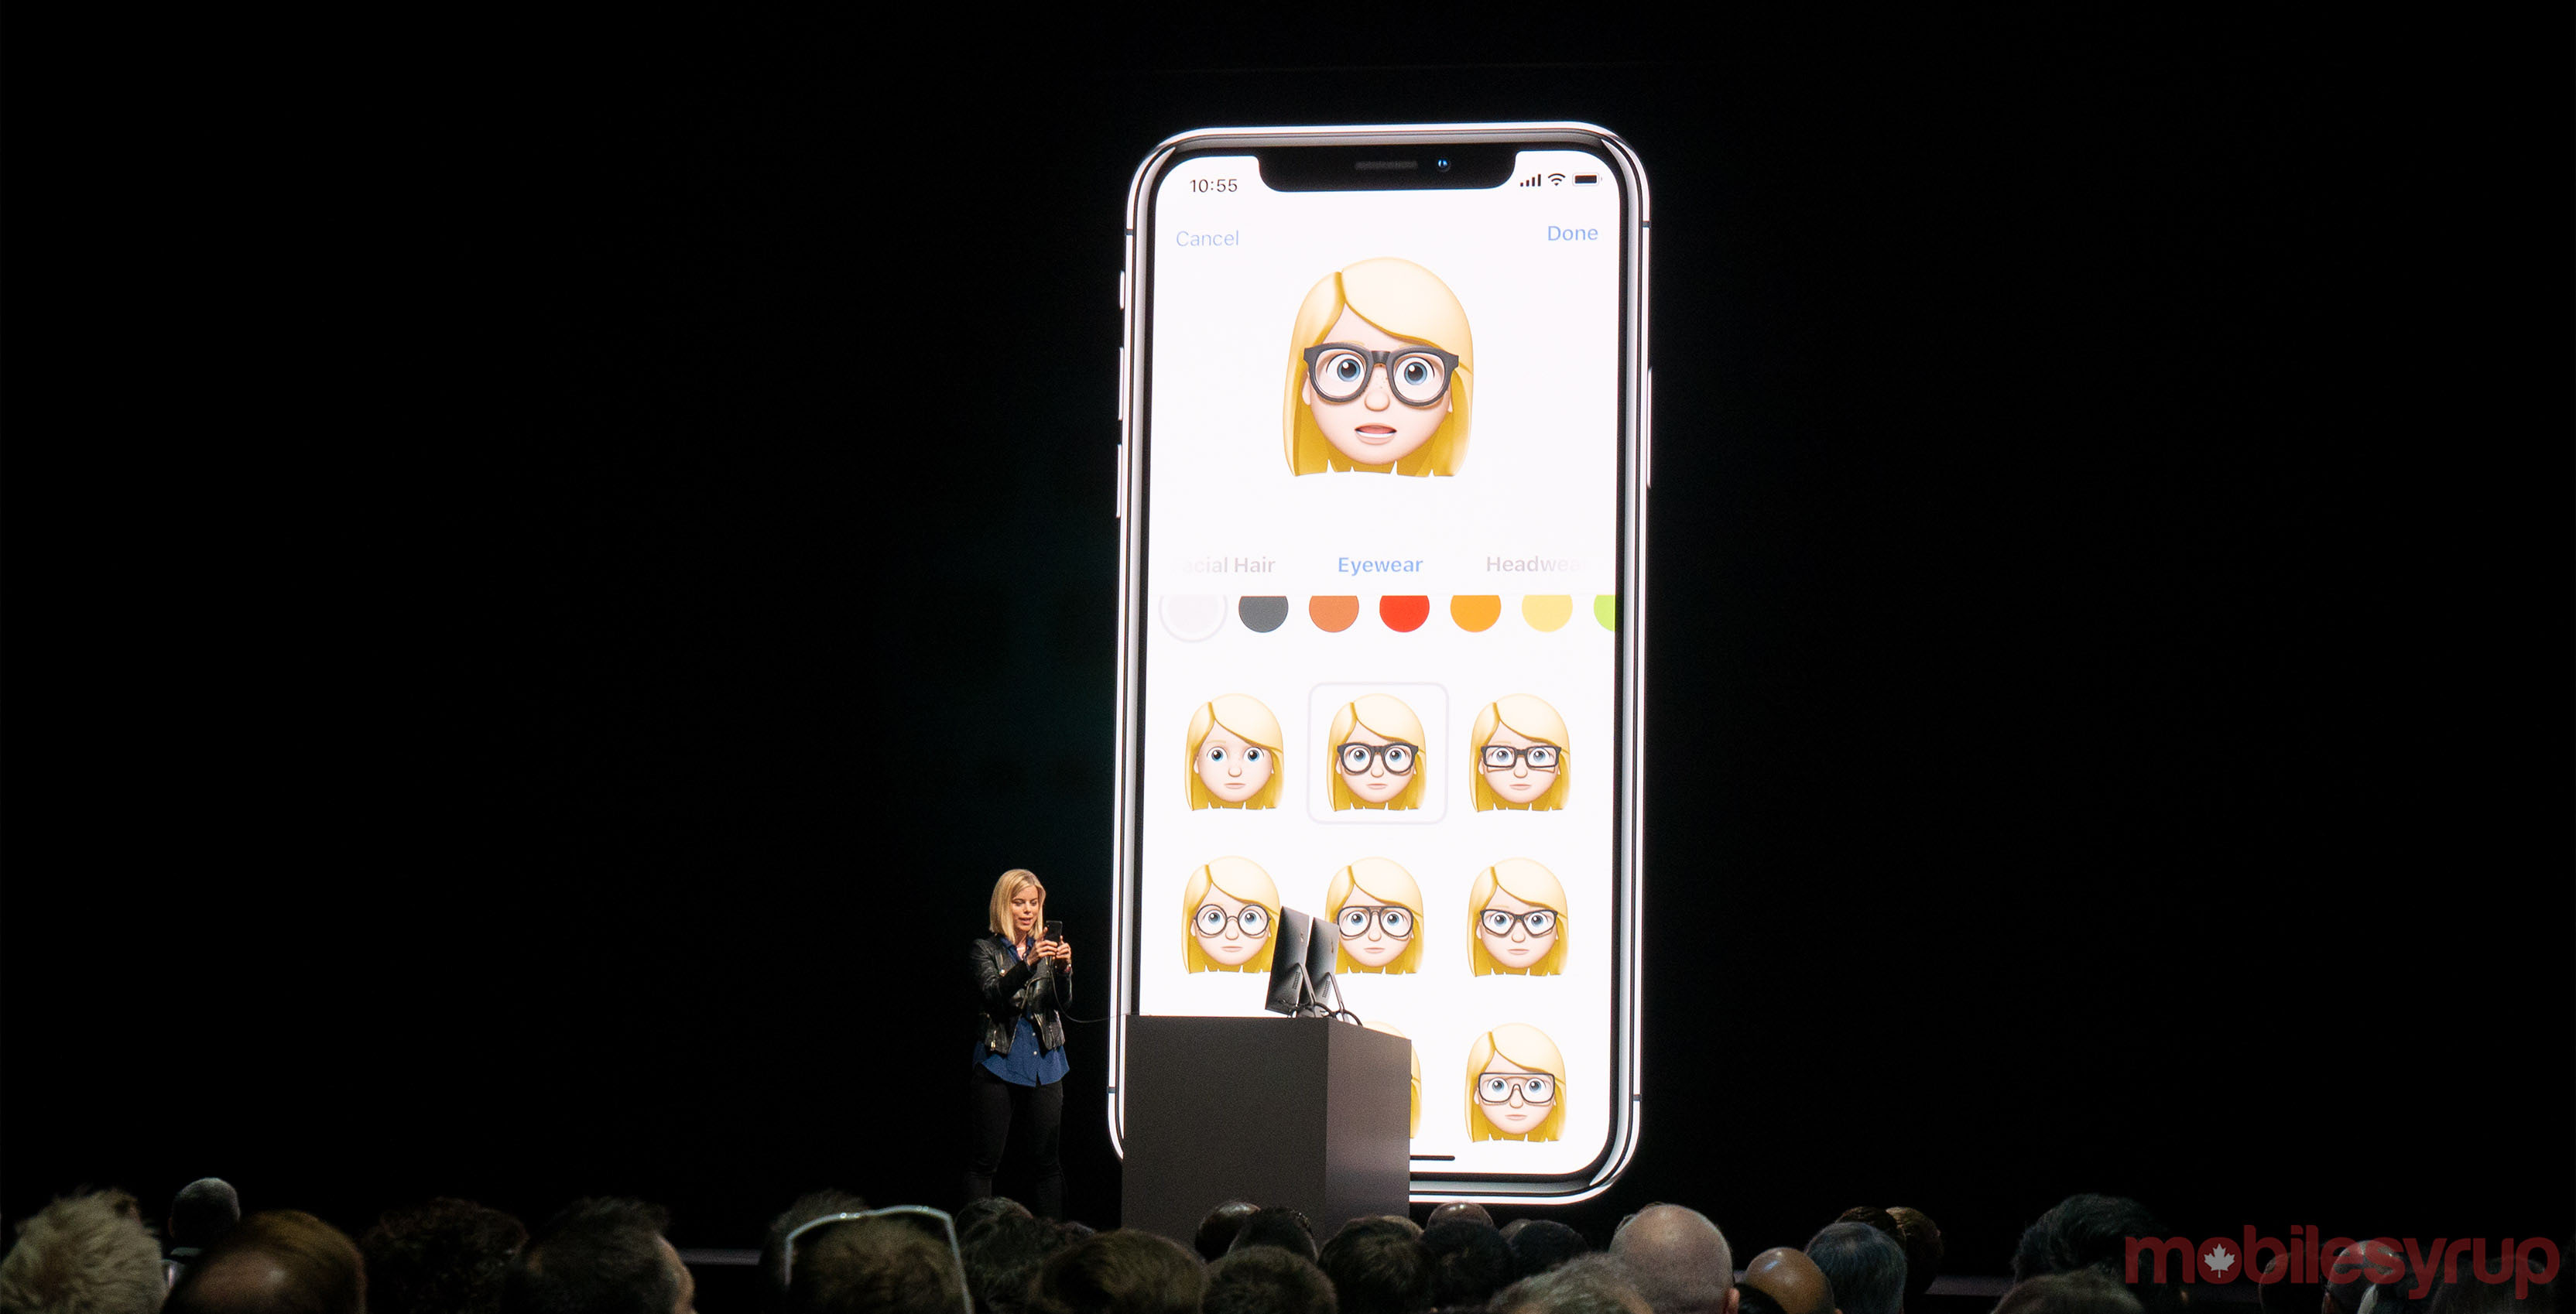 Apple reveals iOS 12 - The big upgrades